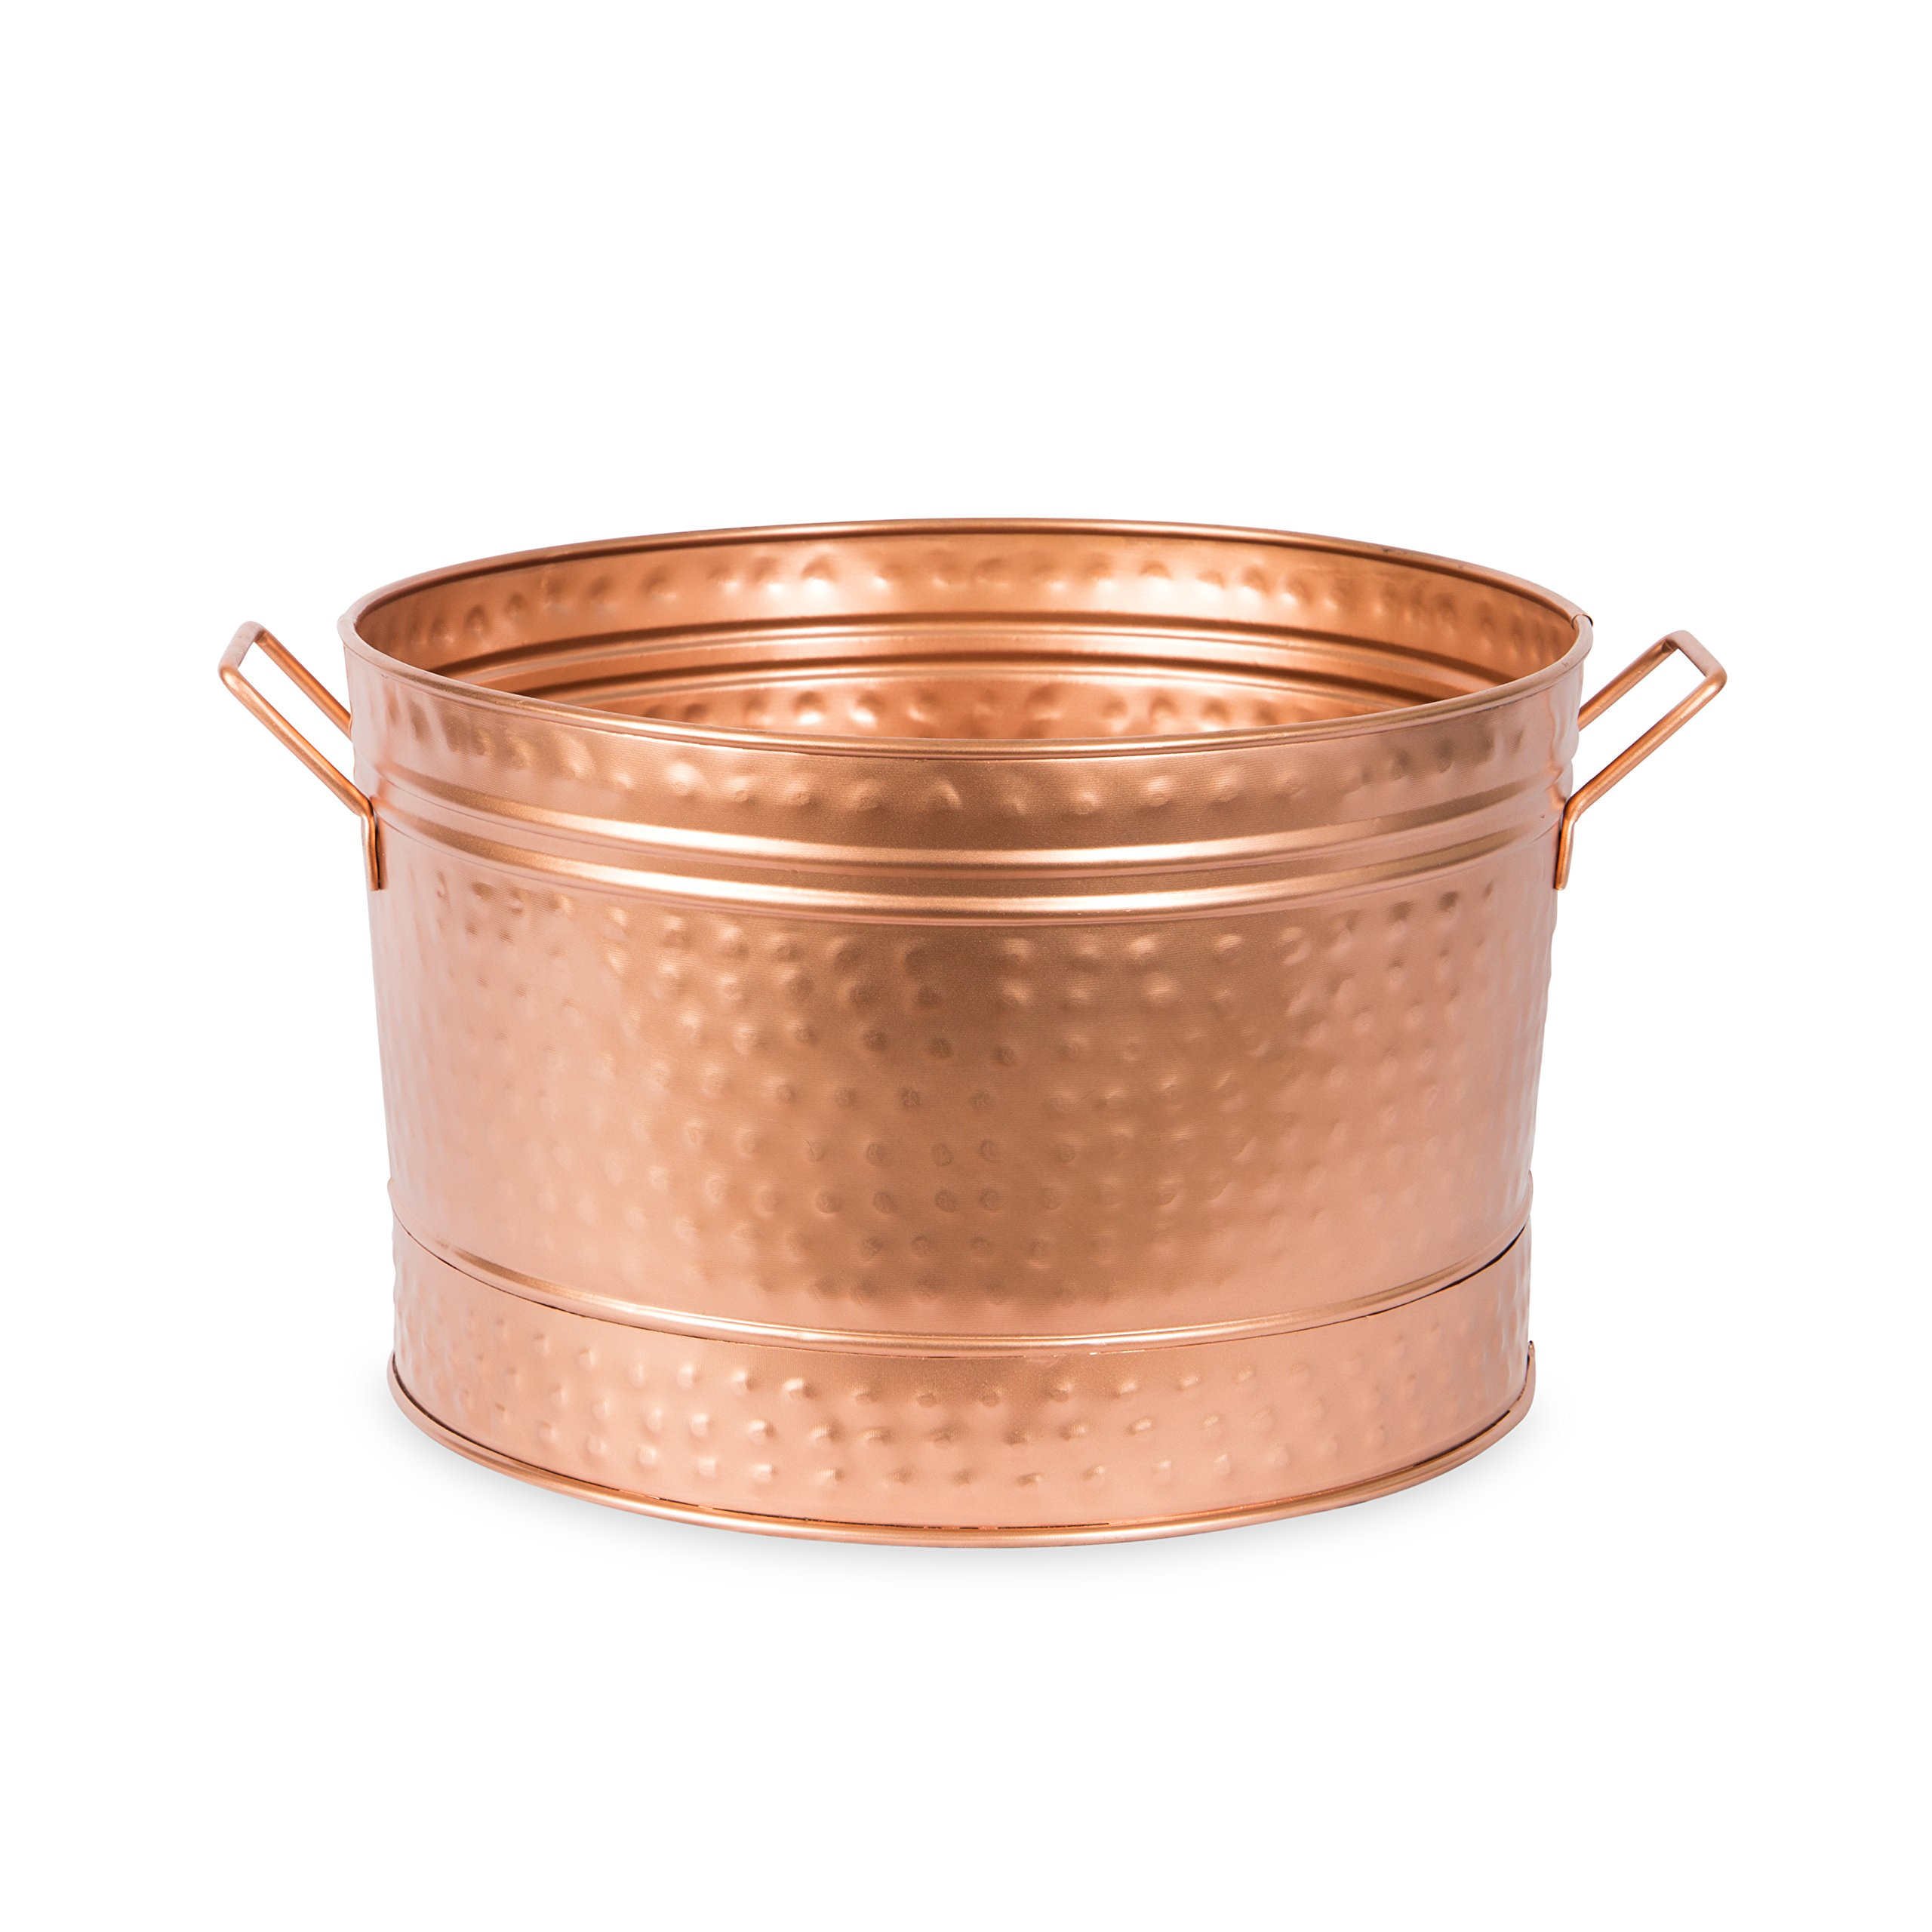 Achla Designs Round Hammered Copper Plated Galvanized Tub